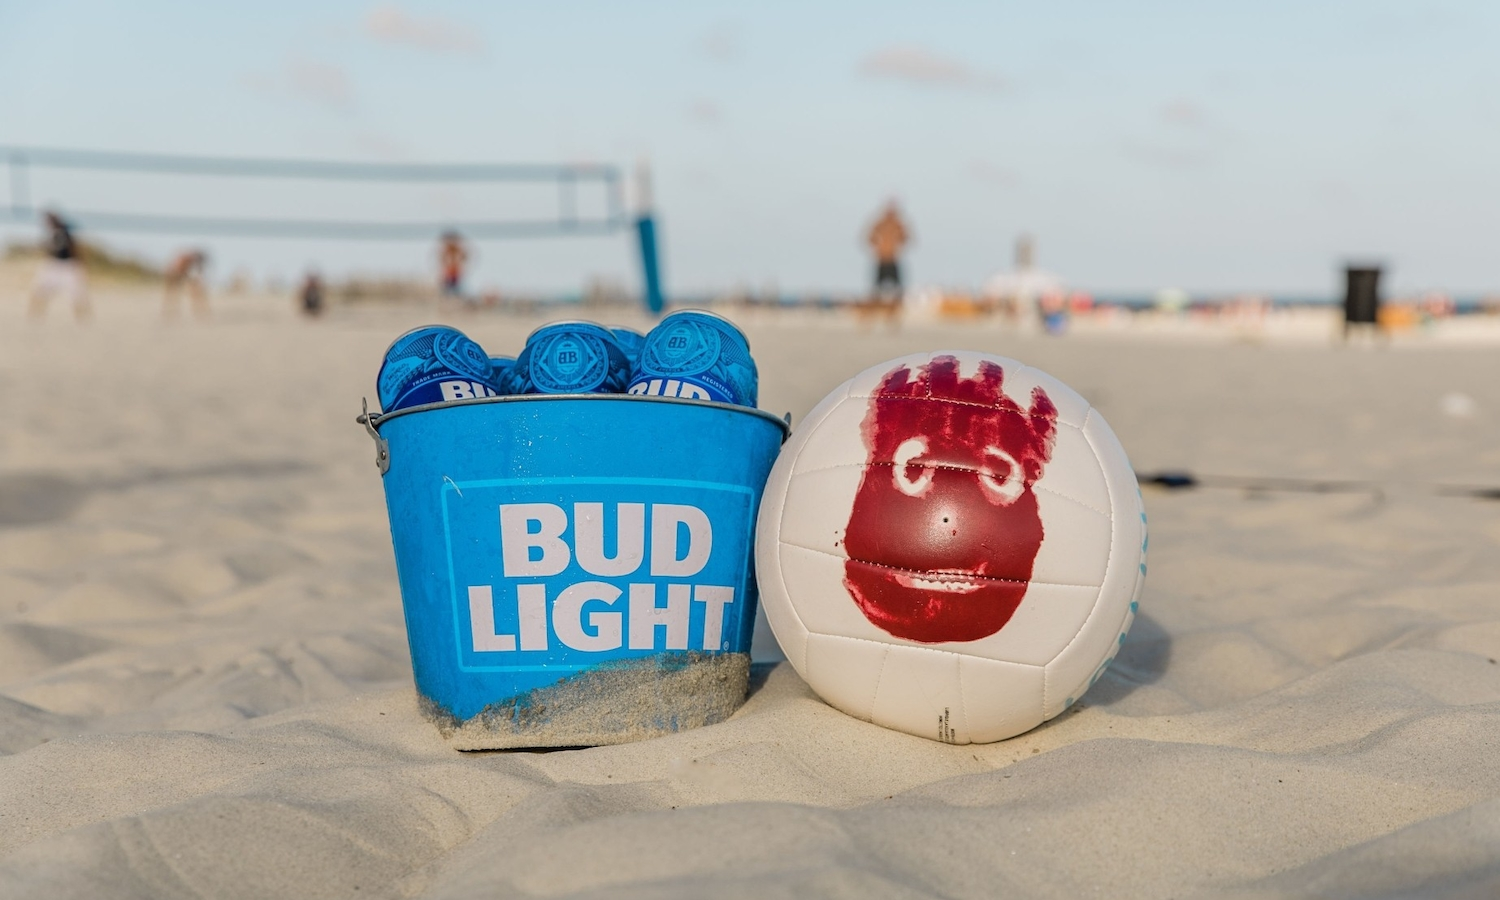 Bud Light and Volleyball